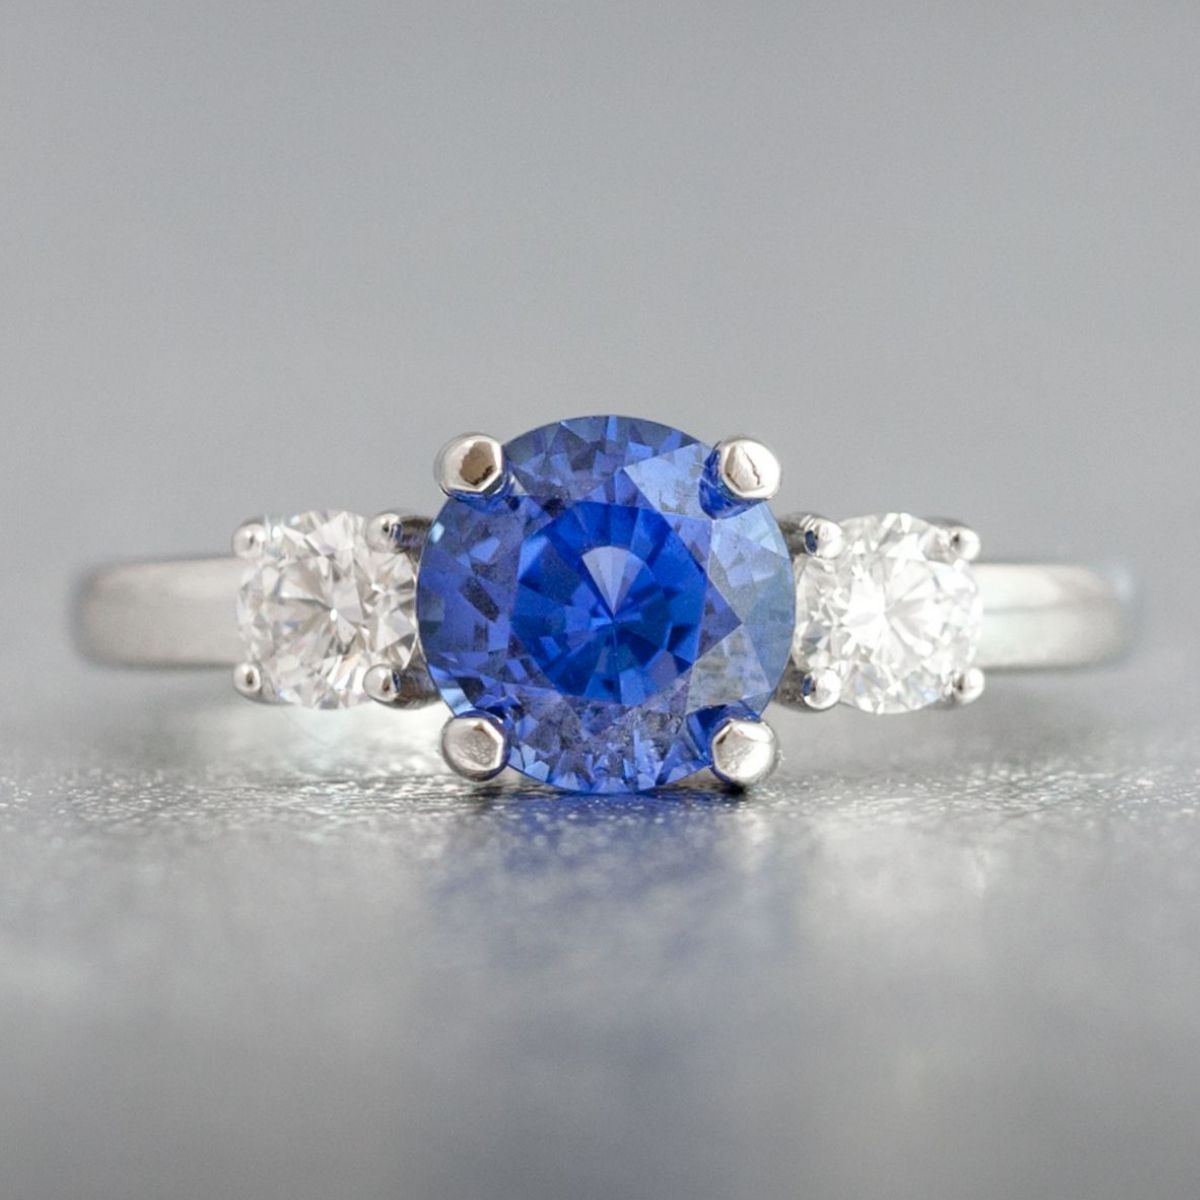 way i cost lab it than however or more page wedding for sapphire sapphires lol would allows our right considering topic the band budget vs natural m moissanite now